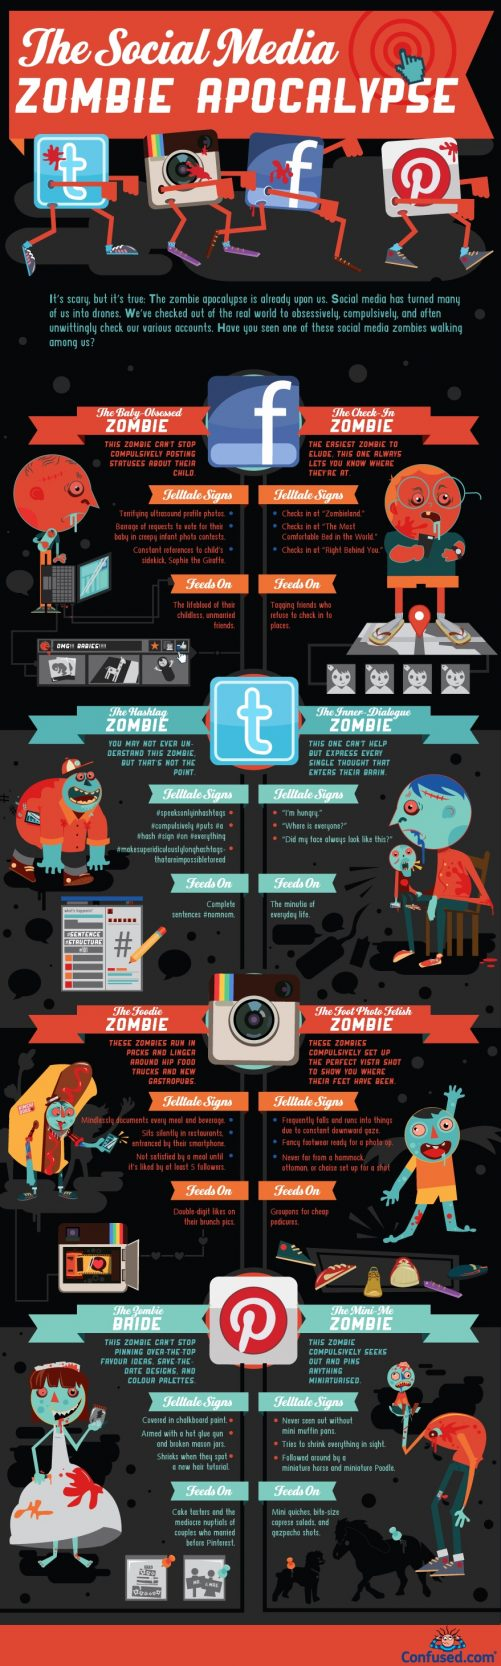 socialmediazombiesinfographic Has Social Media Turned You into a Zombie?